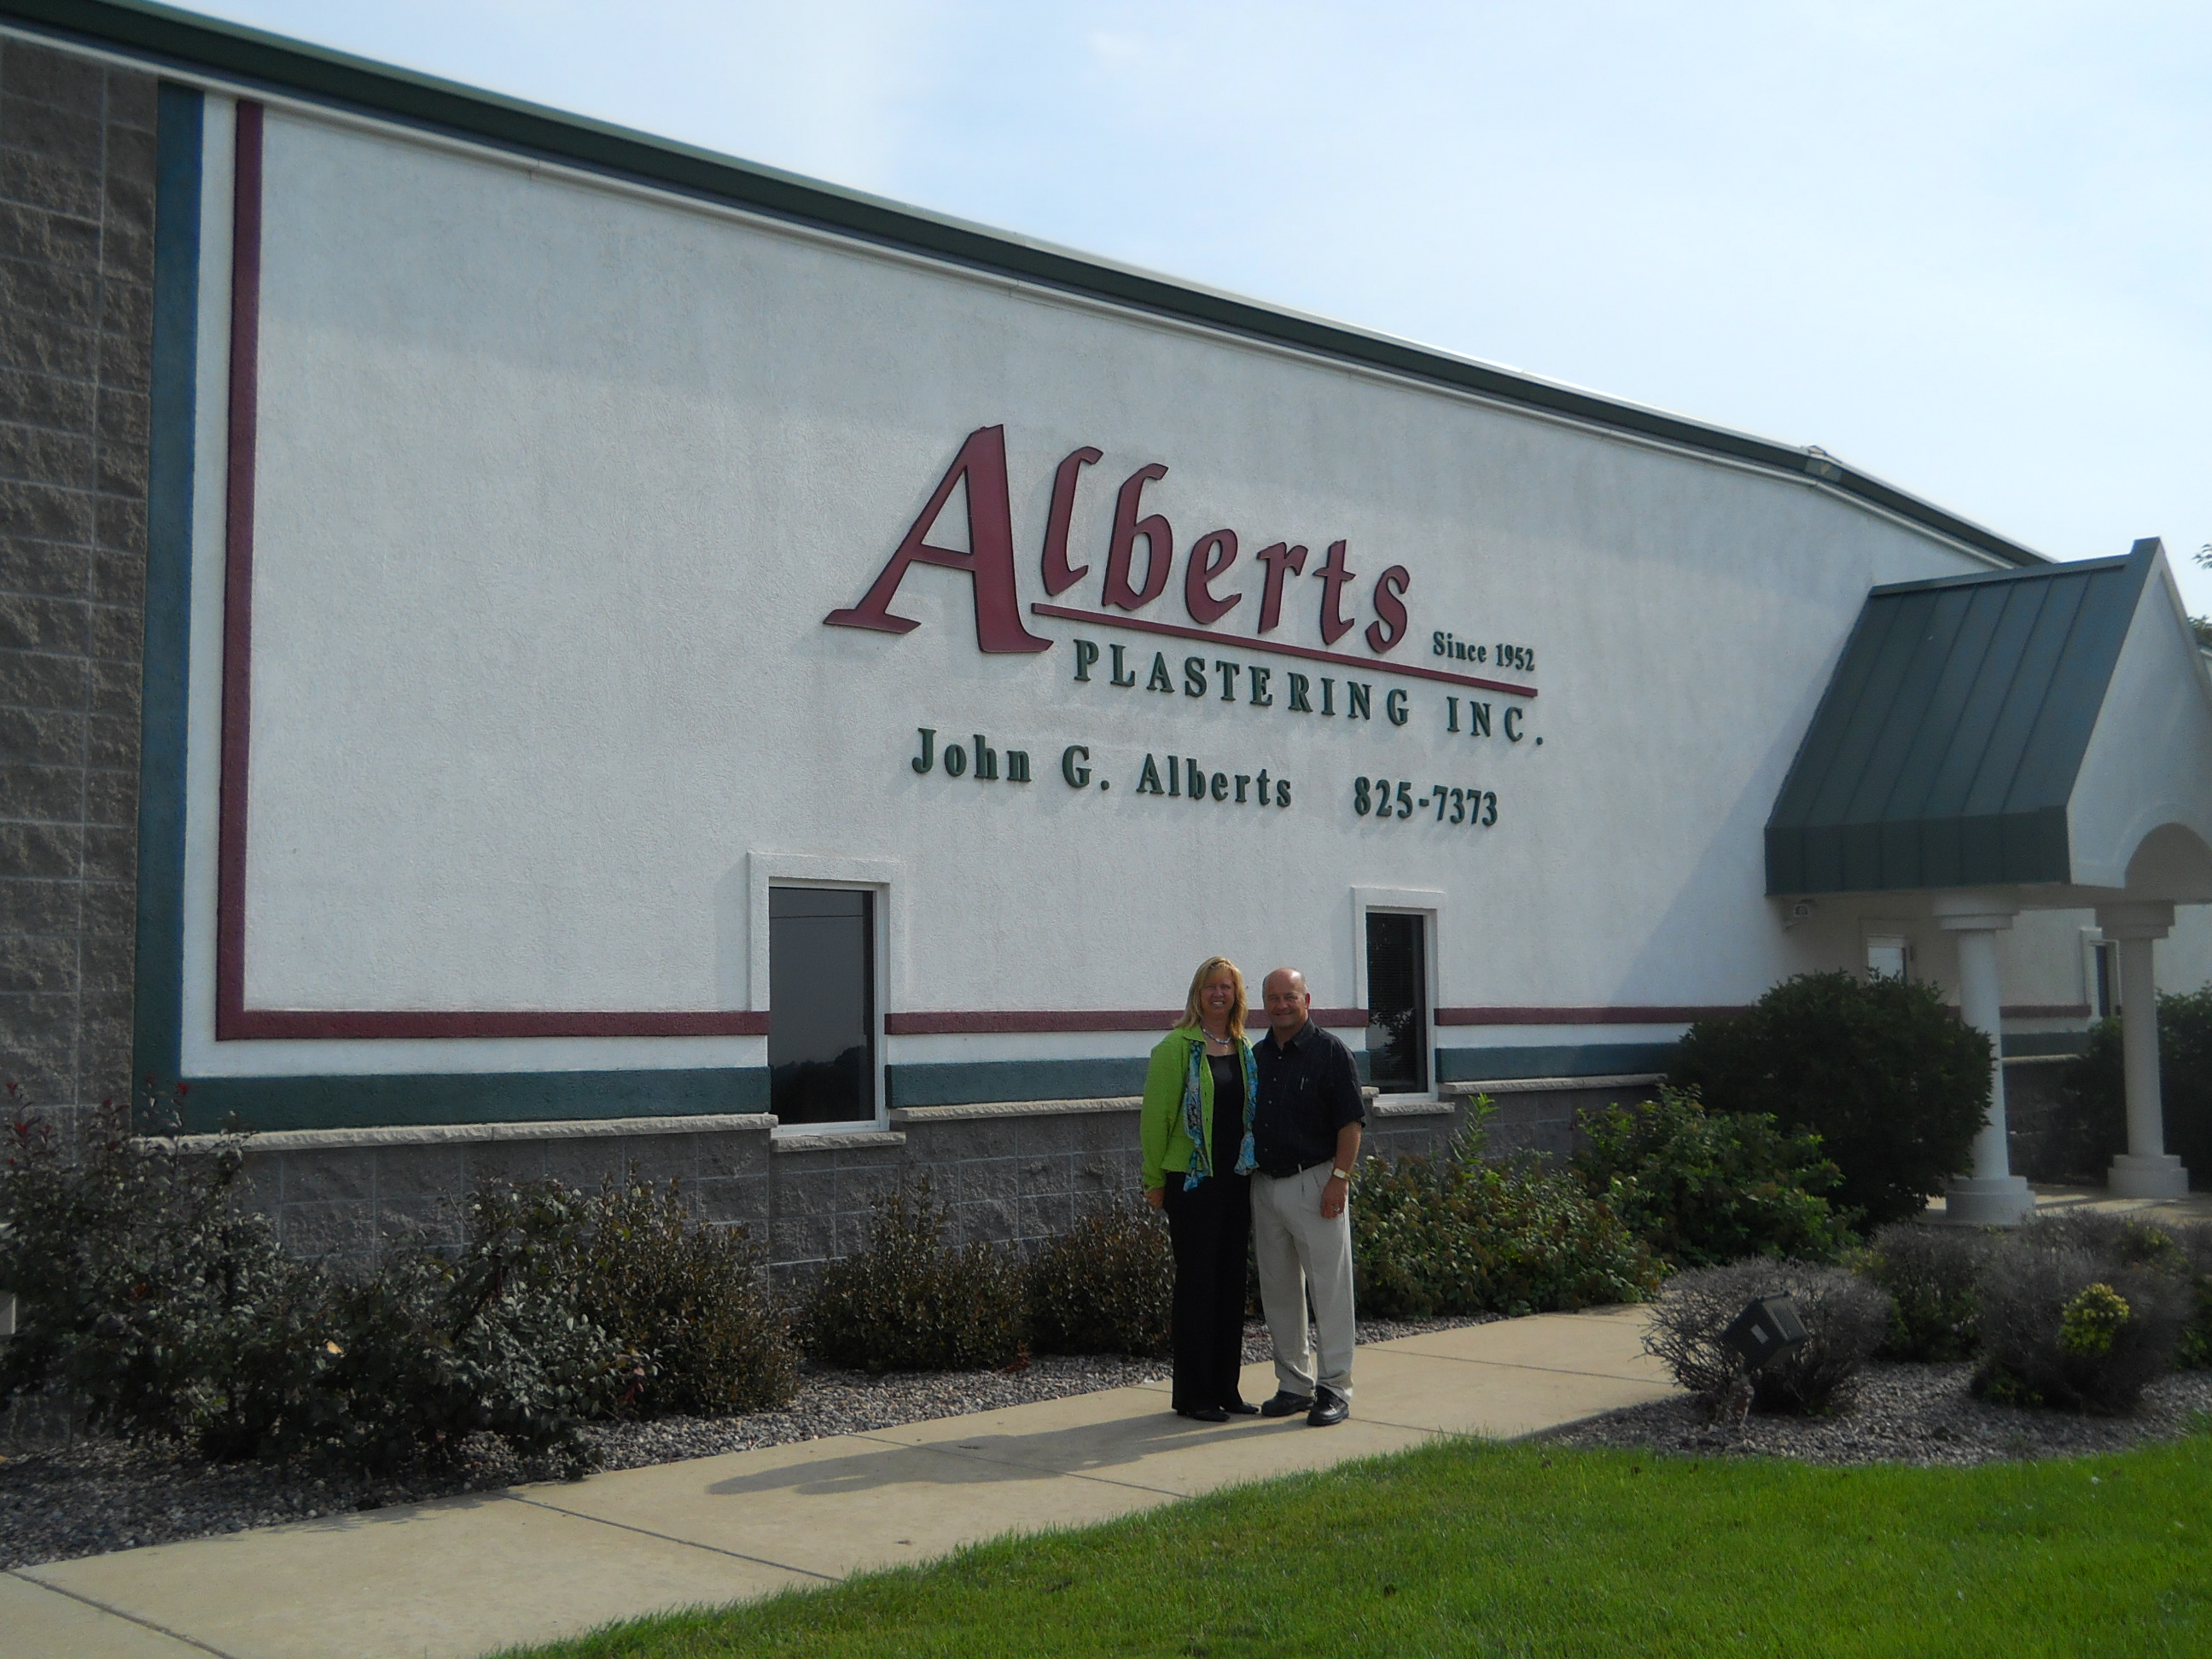 Alberts Plastering Inc 1610 Orchard View Ln, Brussels, WI 54204 - YP.com